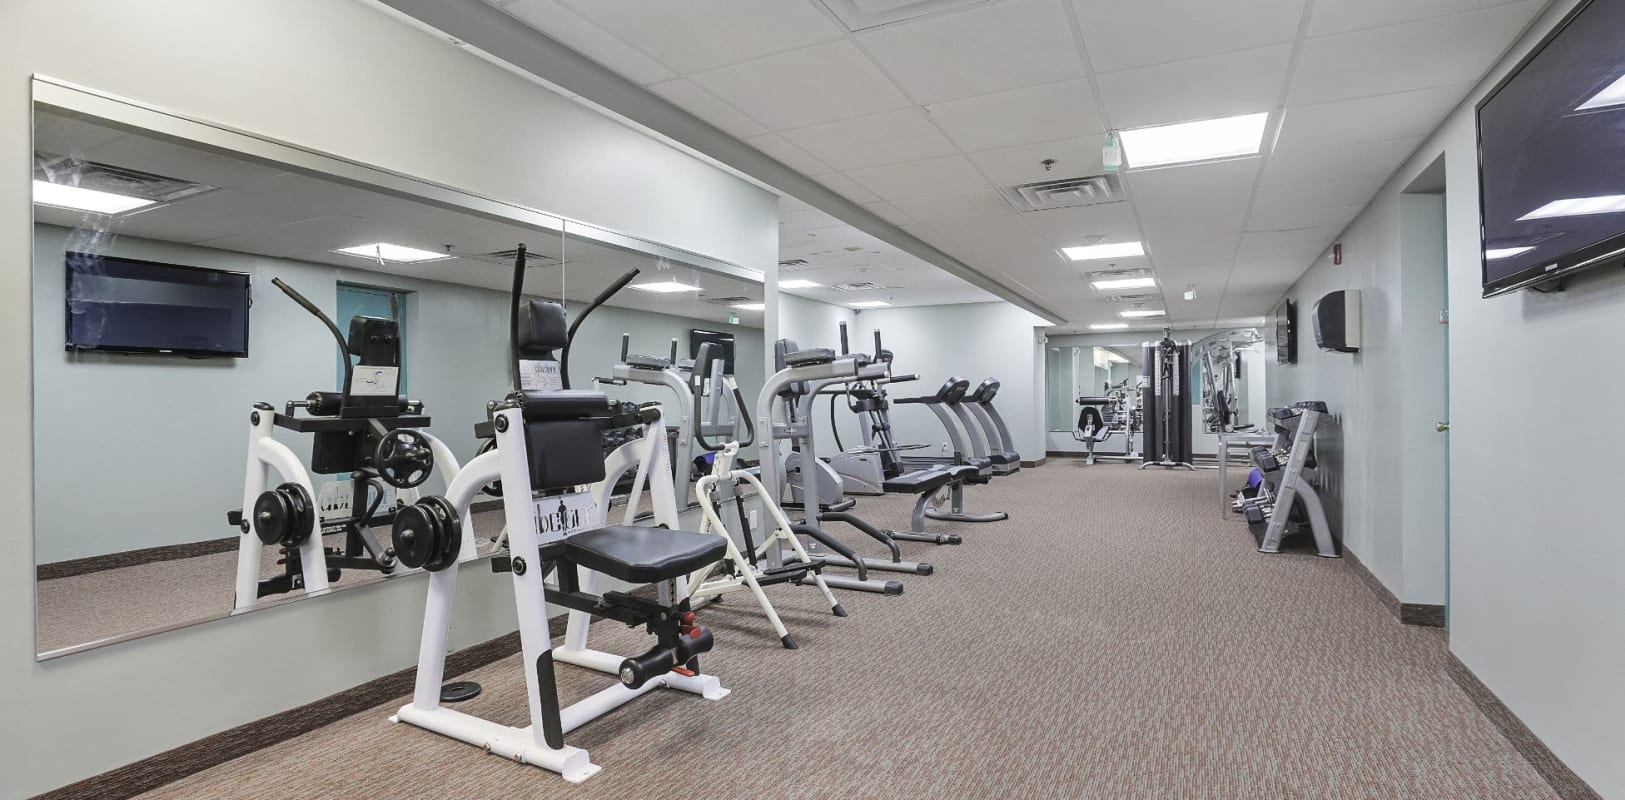 State-of-the-art fitness center at 10 Landing Lane in New Brunswick, New Jersey